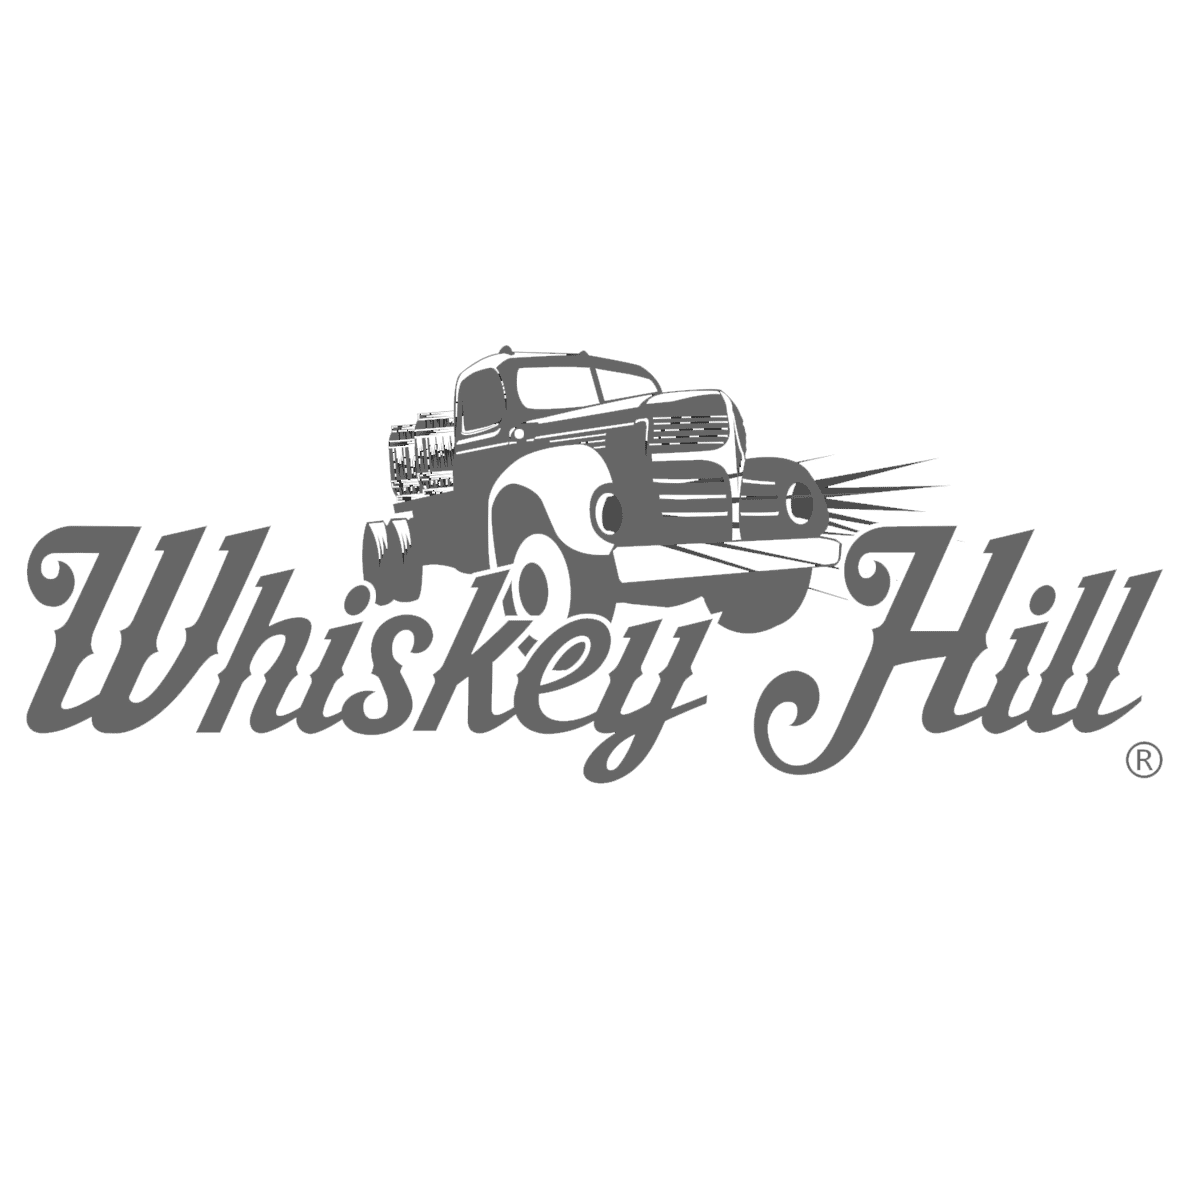 whiskey hill